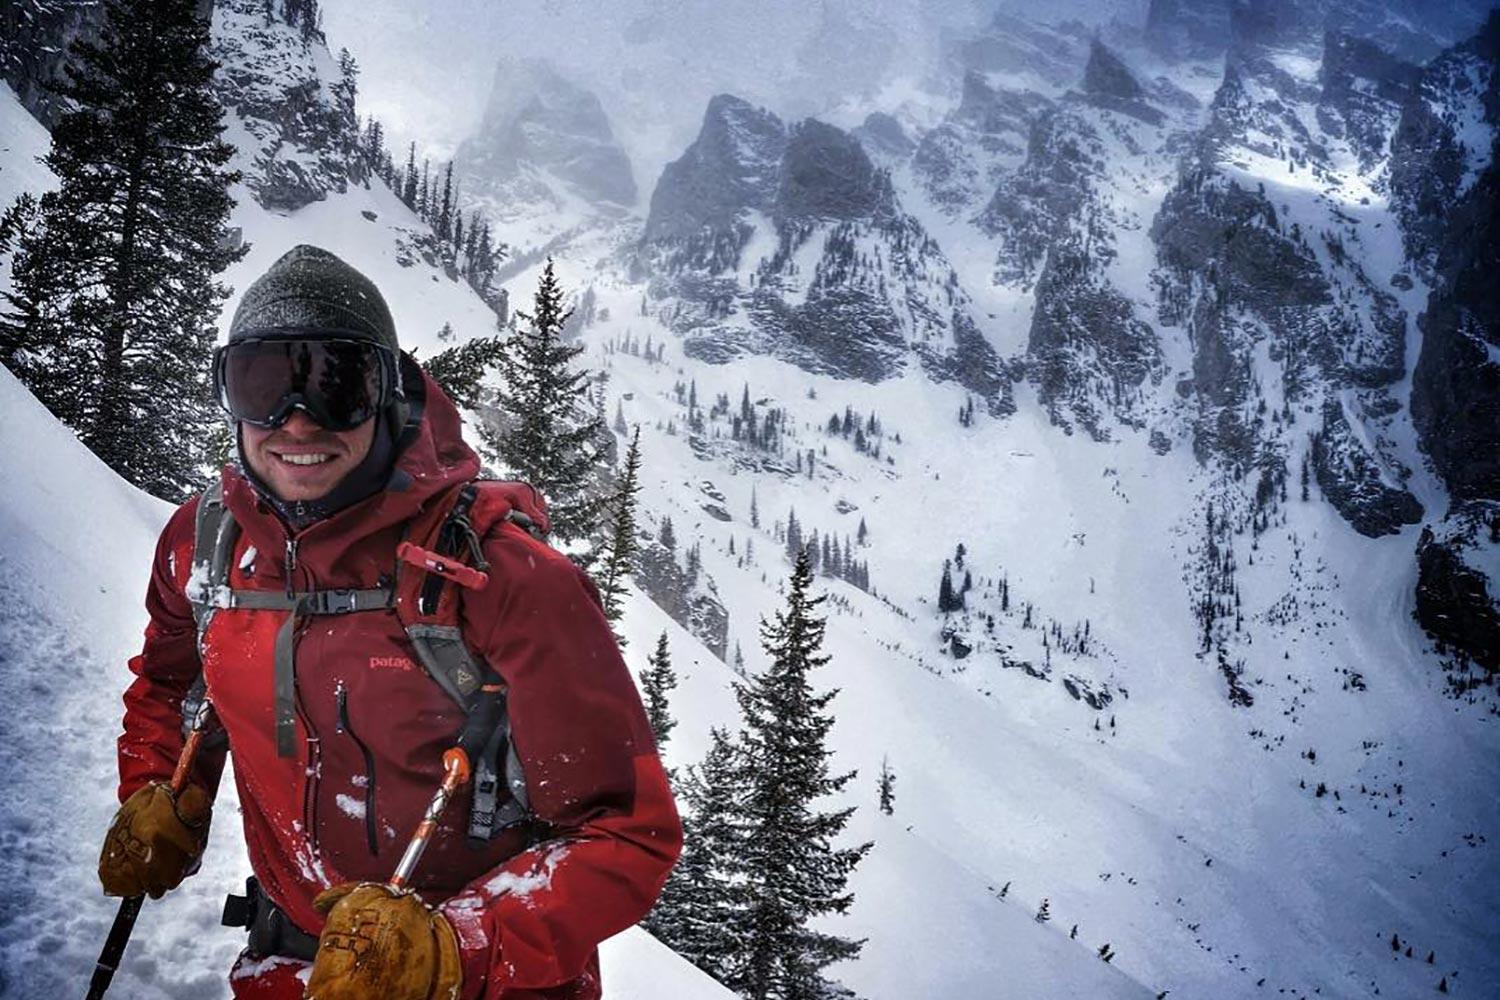 """""""When my own Alpine ski racing career came to an end after college, I wanted to give back to the sport that had given me so much,"""" Zach Kuster said."""